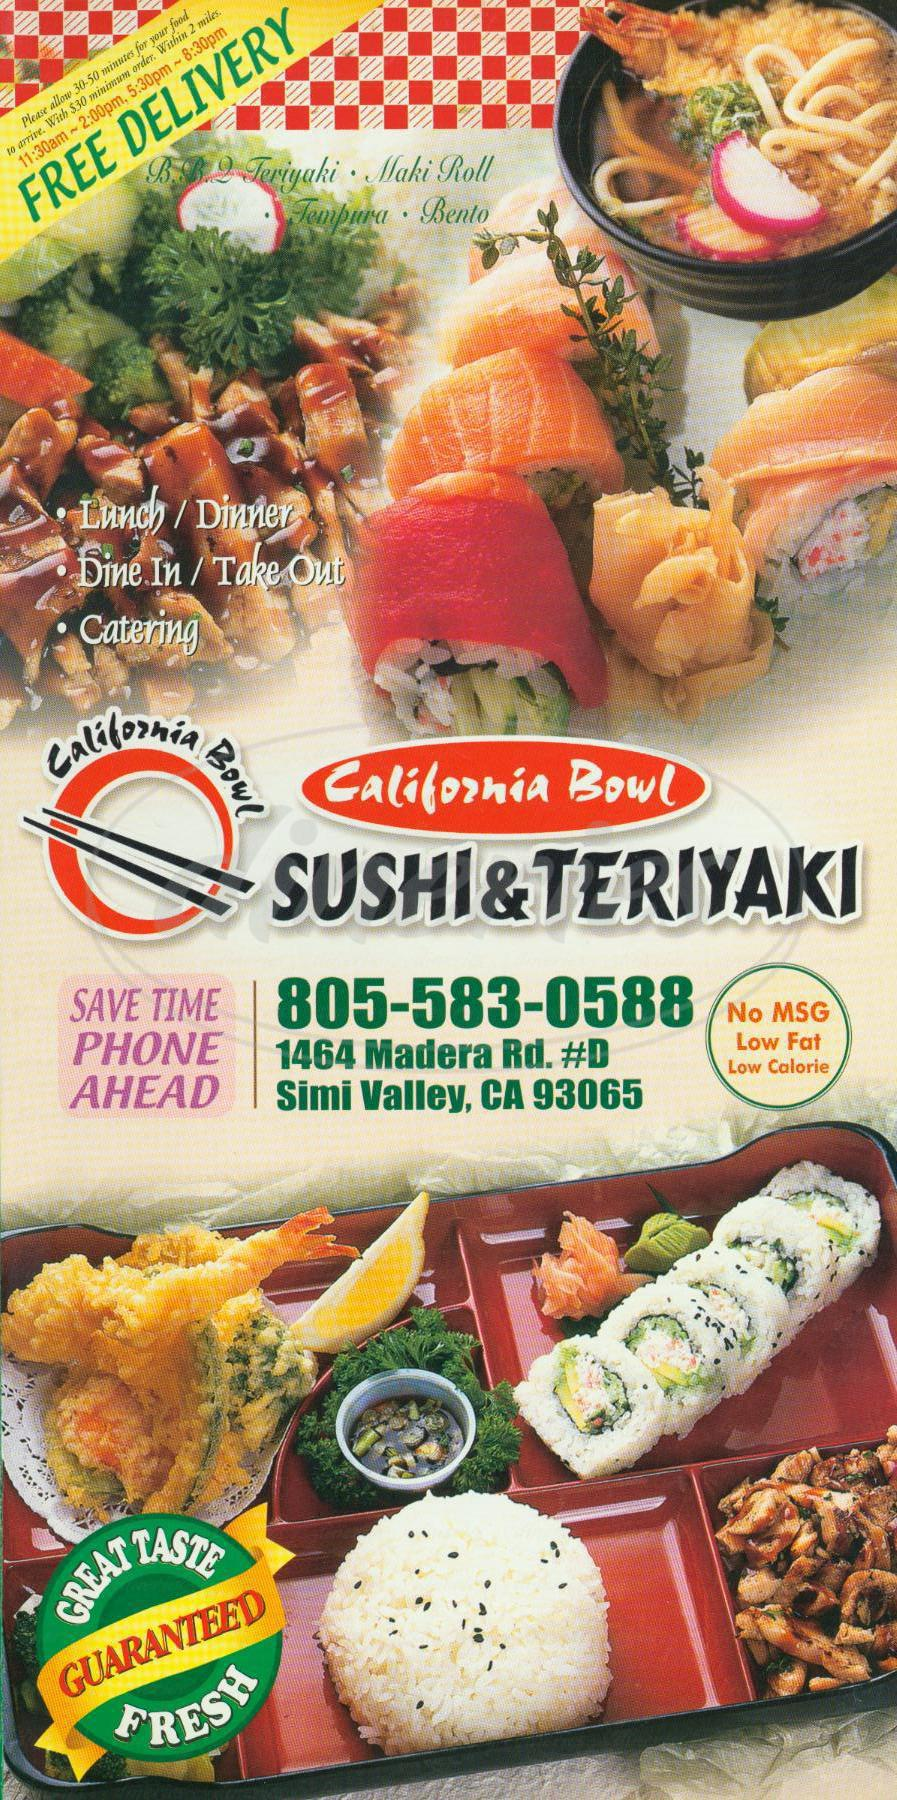 menu for California Bowl Sushi & Teriyaki